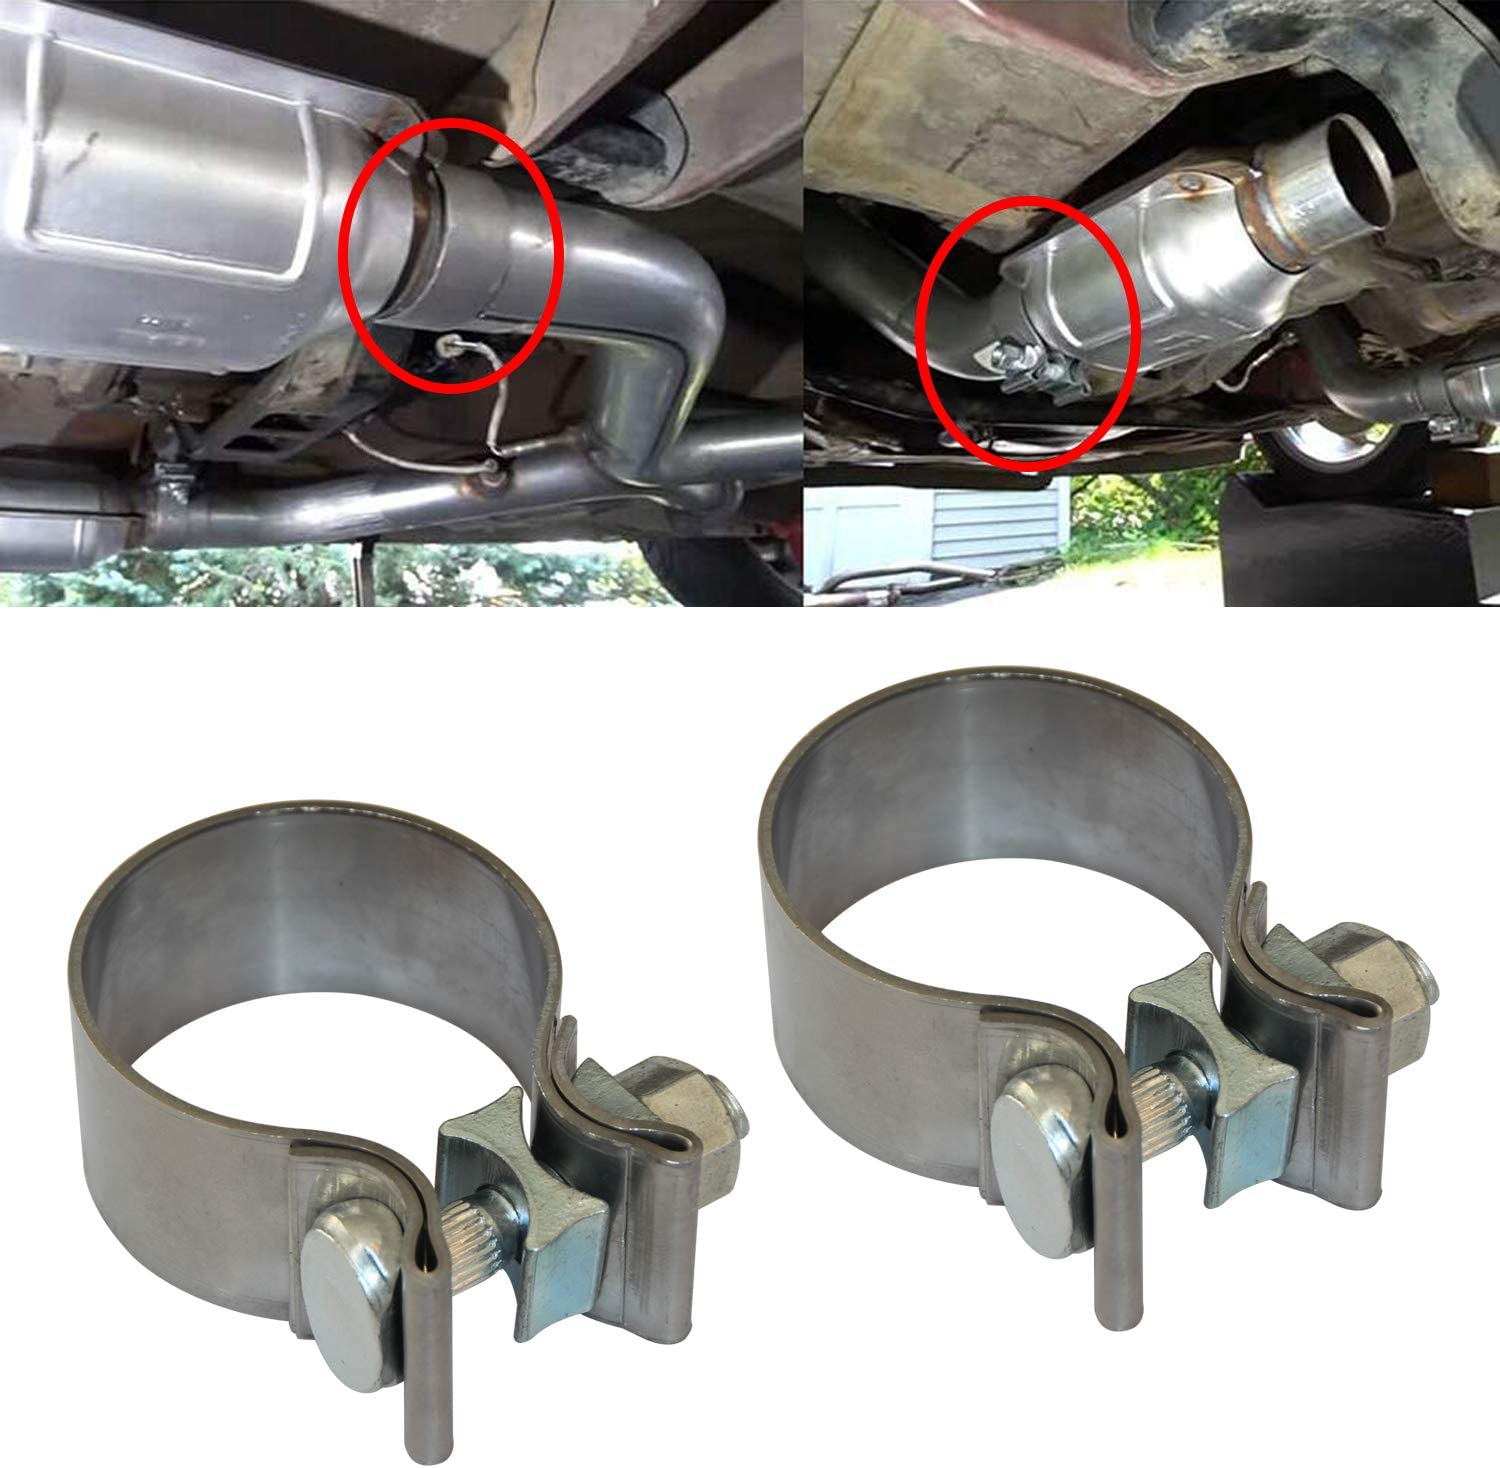 2PCS Exhaust Clamps 2 Inch Butt Joint Exhaust Pipe Muffler Clamp Band Stainless Steel Exhaust System Connection for Cars